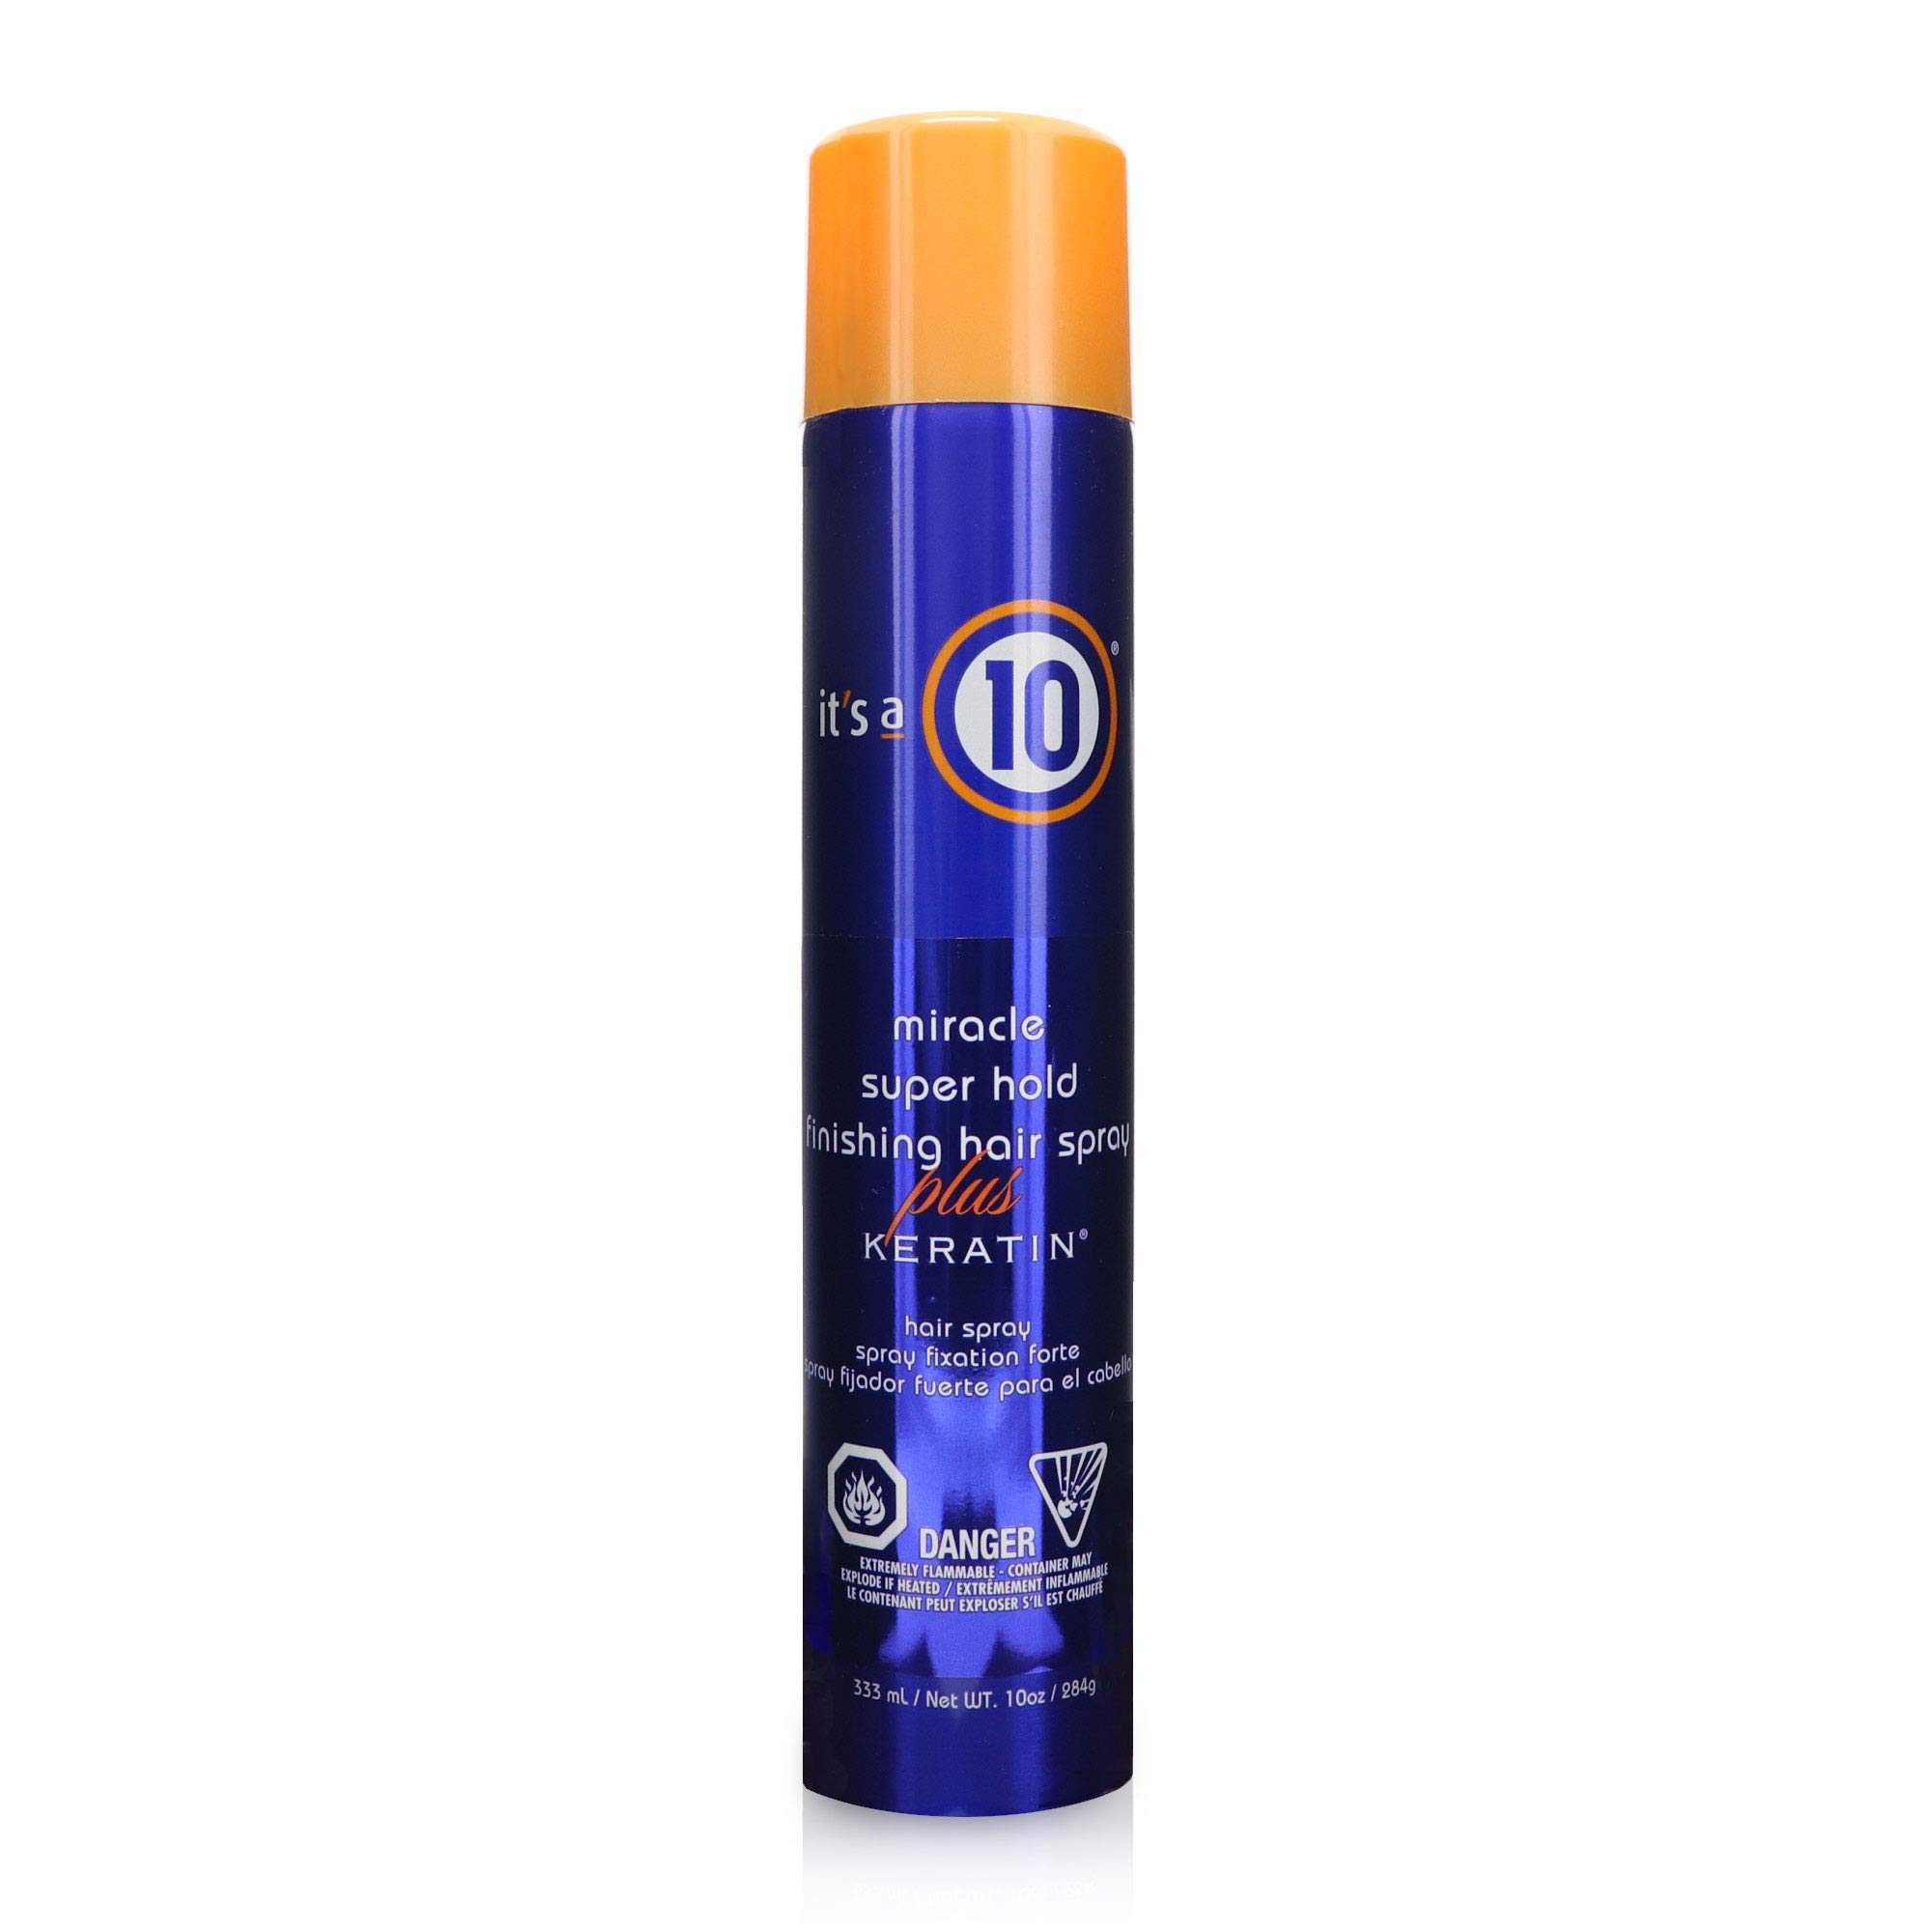 It's a 10 Haircare Miracle Super Hold Finishing Hair Spray Plus Keratin, 10 fl. oz. by It's a 10 Haircare